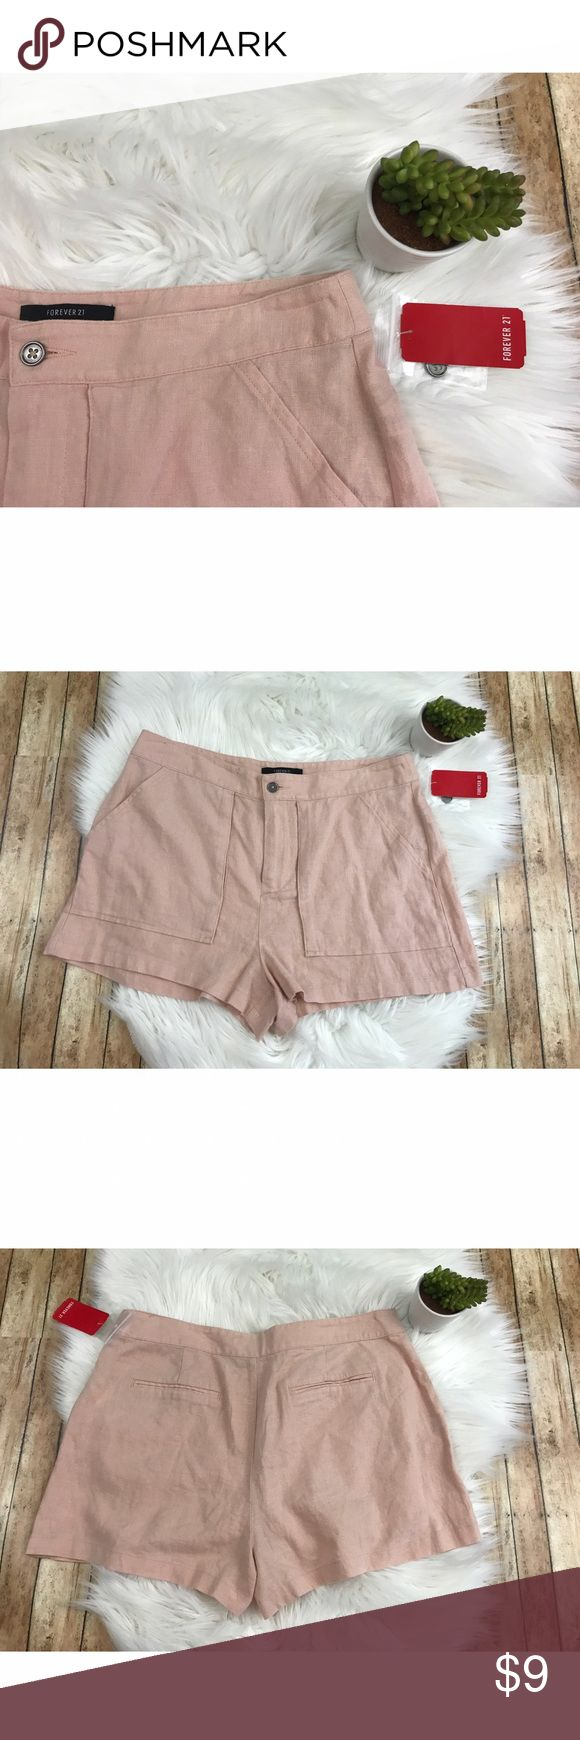 """NWT Forever 21 Light Pink Shorts NWT Forever 21 Light Pink Shorts. Made of 55% Linen and 45% Rayon. Has a couple of brown-ish marks on the waistband and a small snag on the back under the waistband. comes from a smoke free, pet friendly home. 🚫NO TRADES! Measurements: -Inseam: 2"""" -Waist: 14.5"""" -Top To Bottom: 12.5"""" Forever 21 Shorts"""